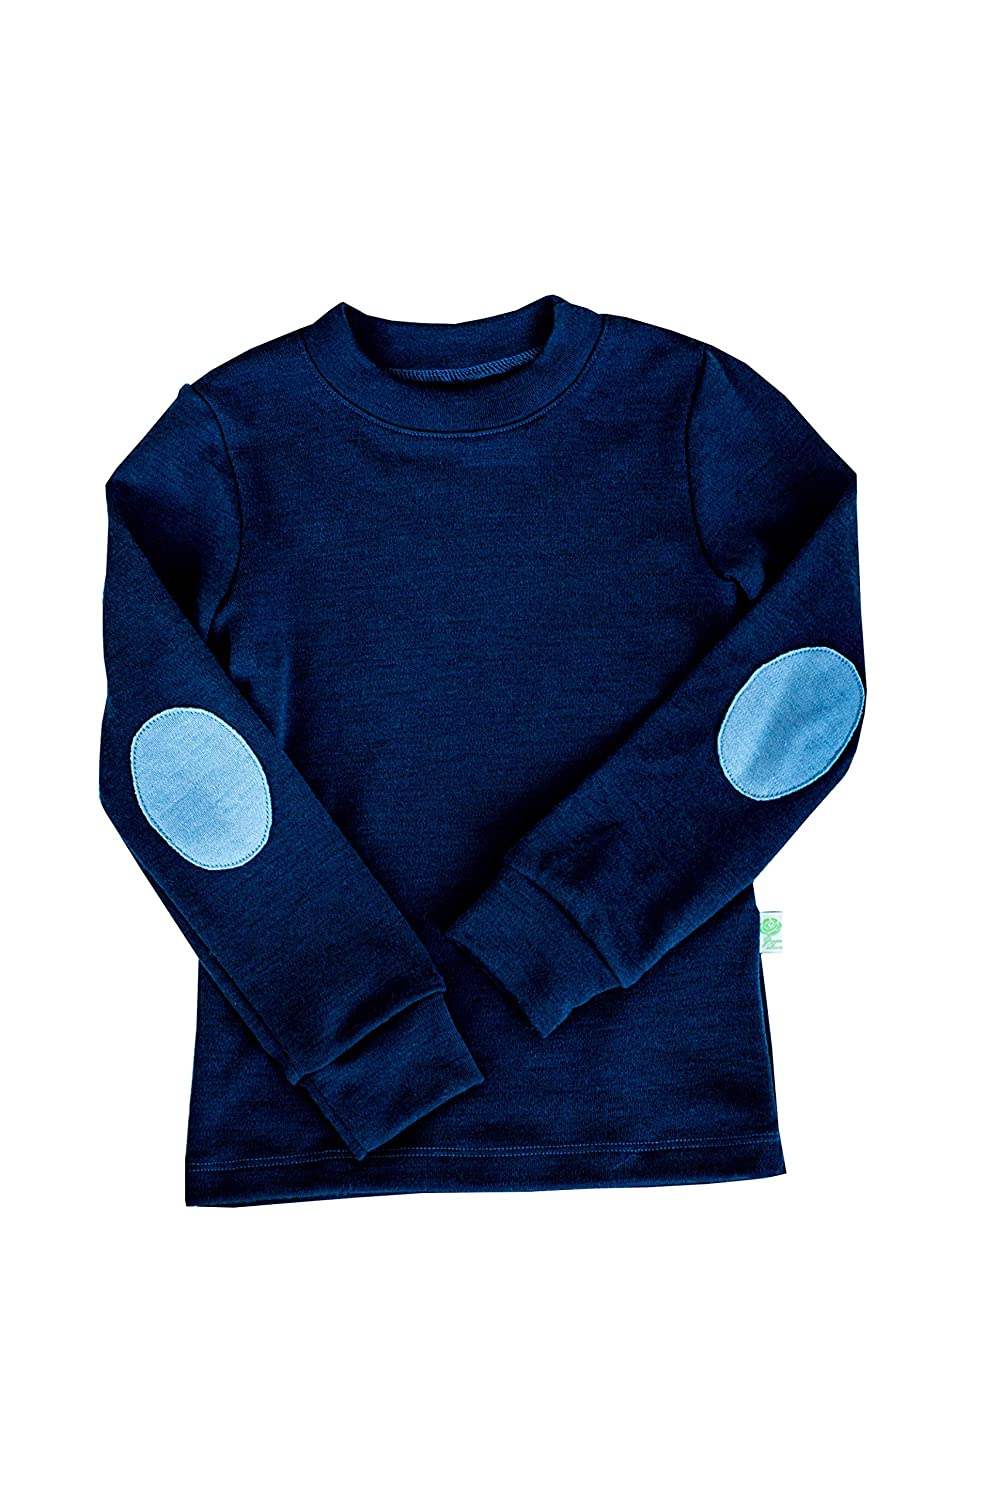 for Girls and Boys GREEN ROSE Kids Long Sleeve T-Shirts with Patches 100/% Merino Wool